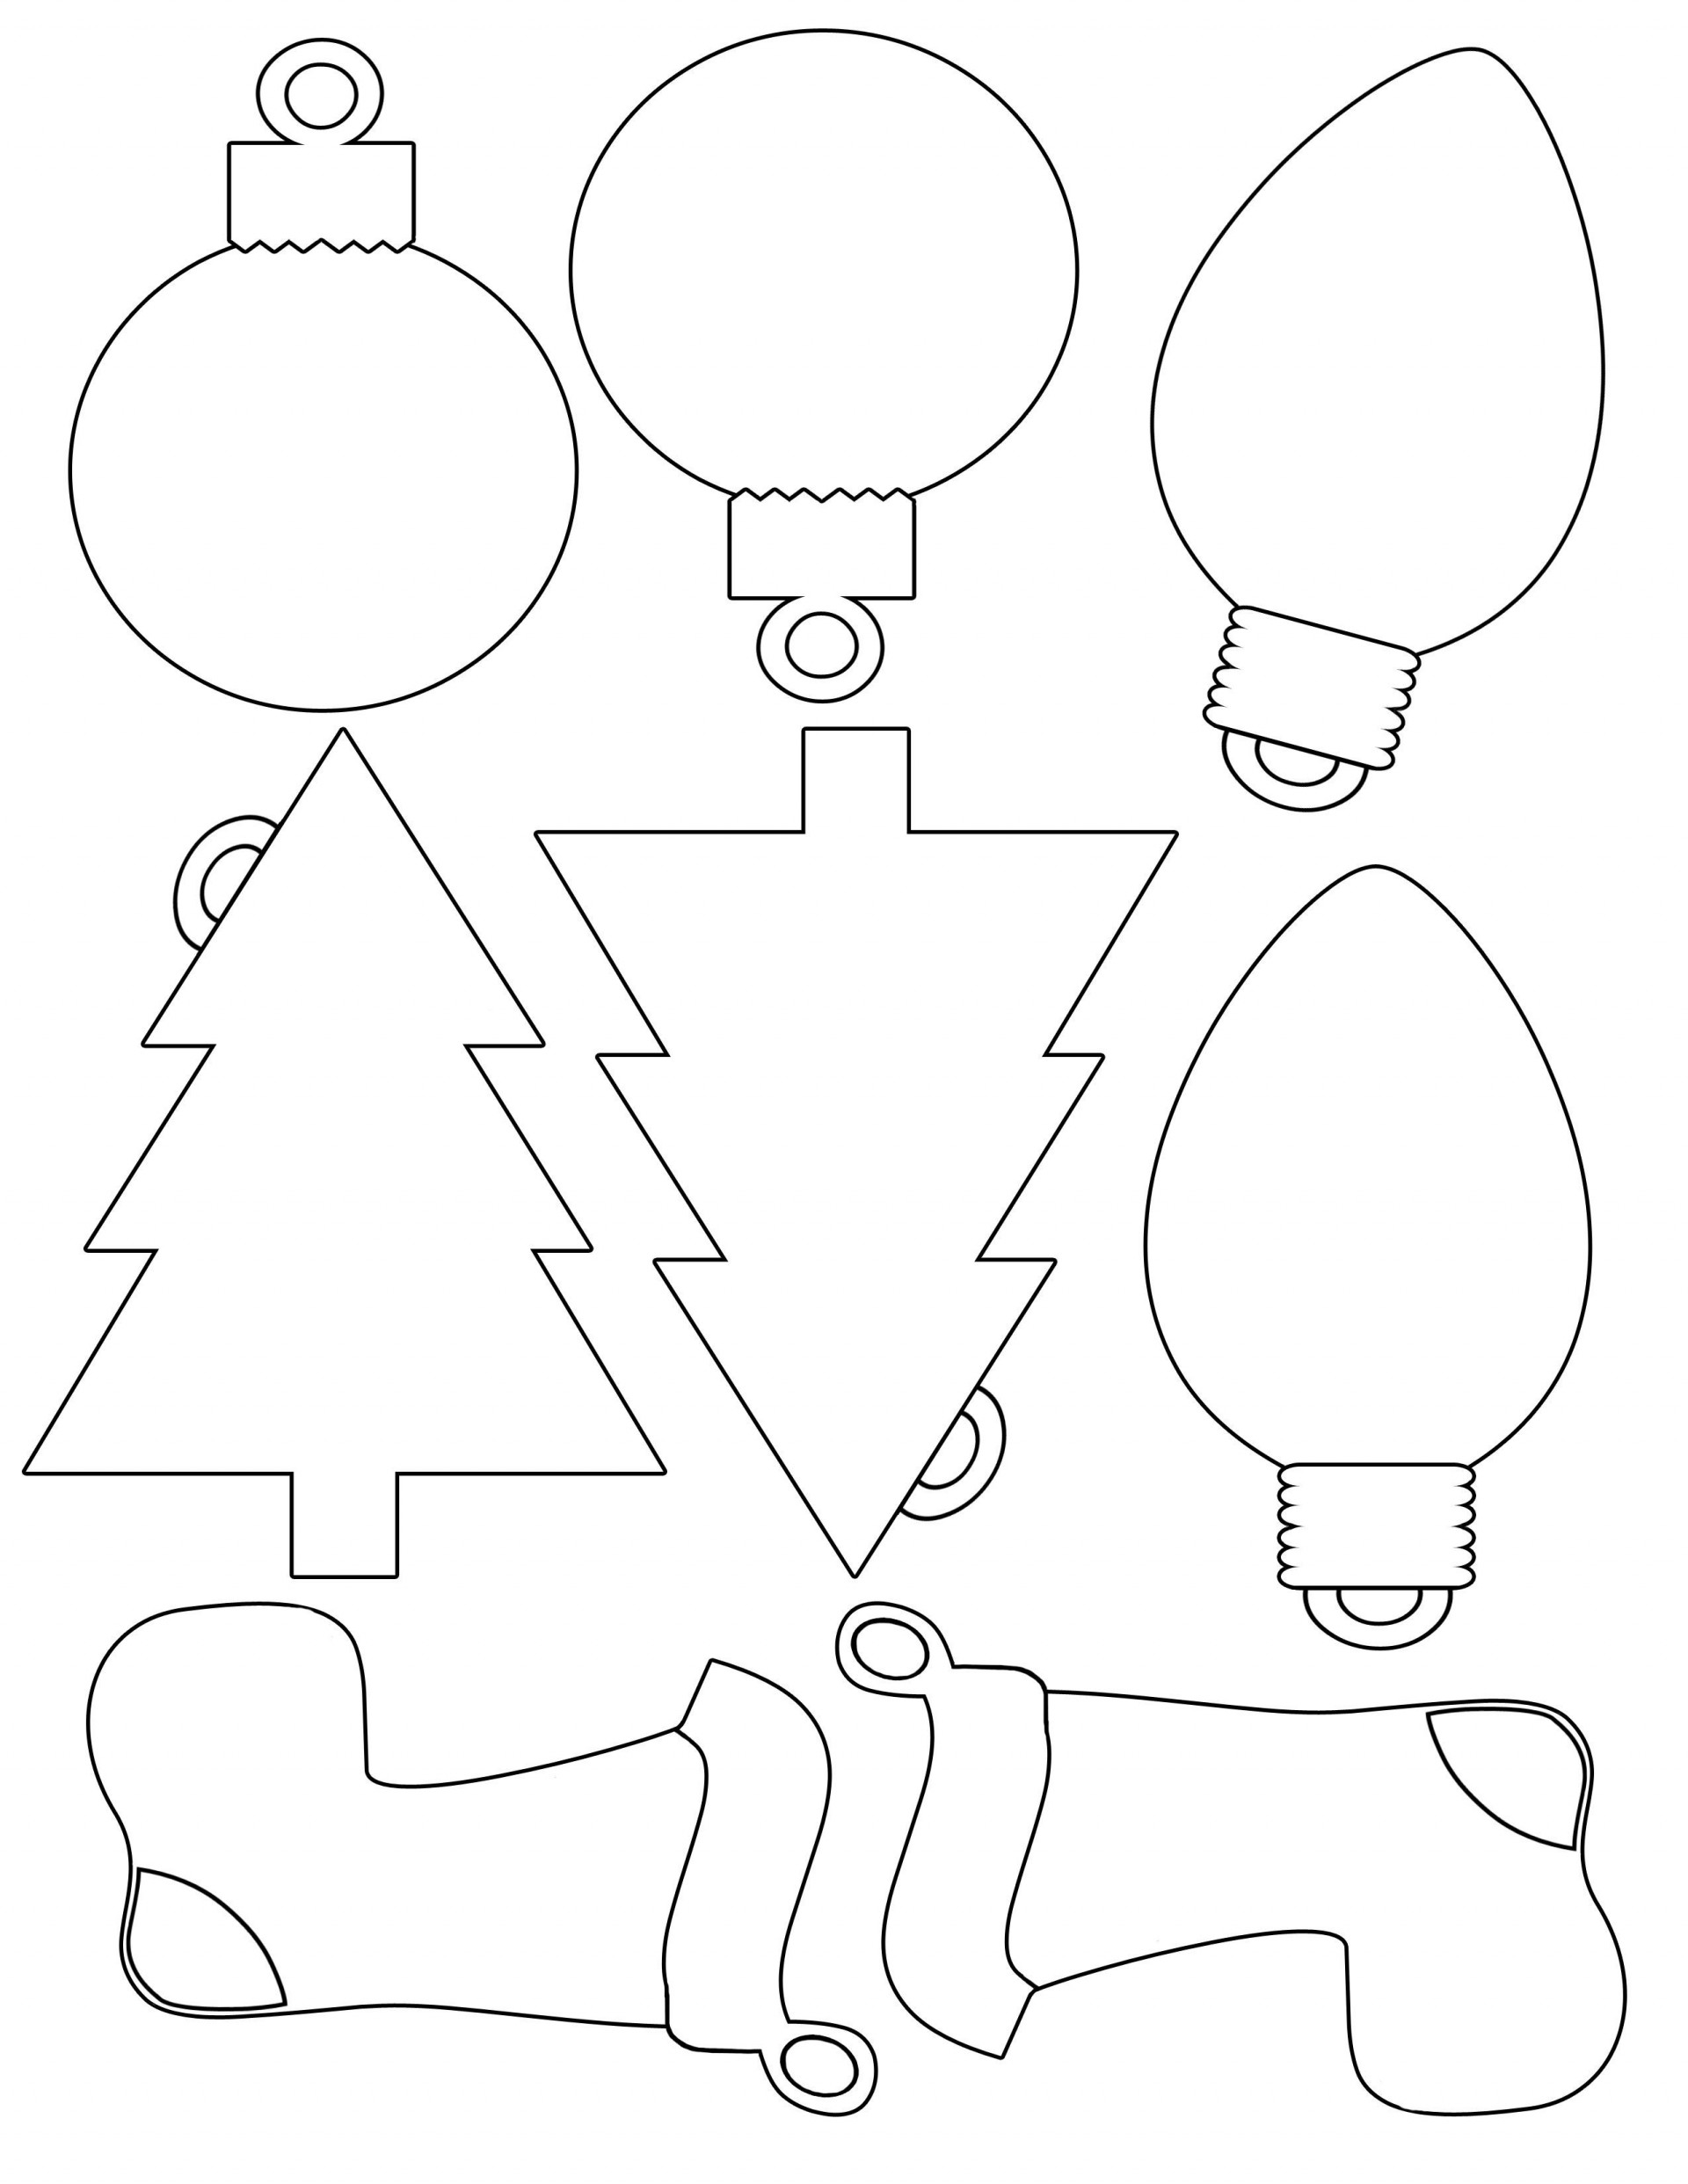 005 Shocking Printable Christma Ornament Template Picture  Templates Stencil Felt Pattern Tree1920